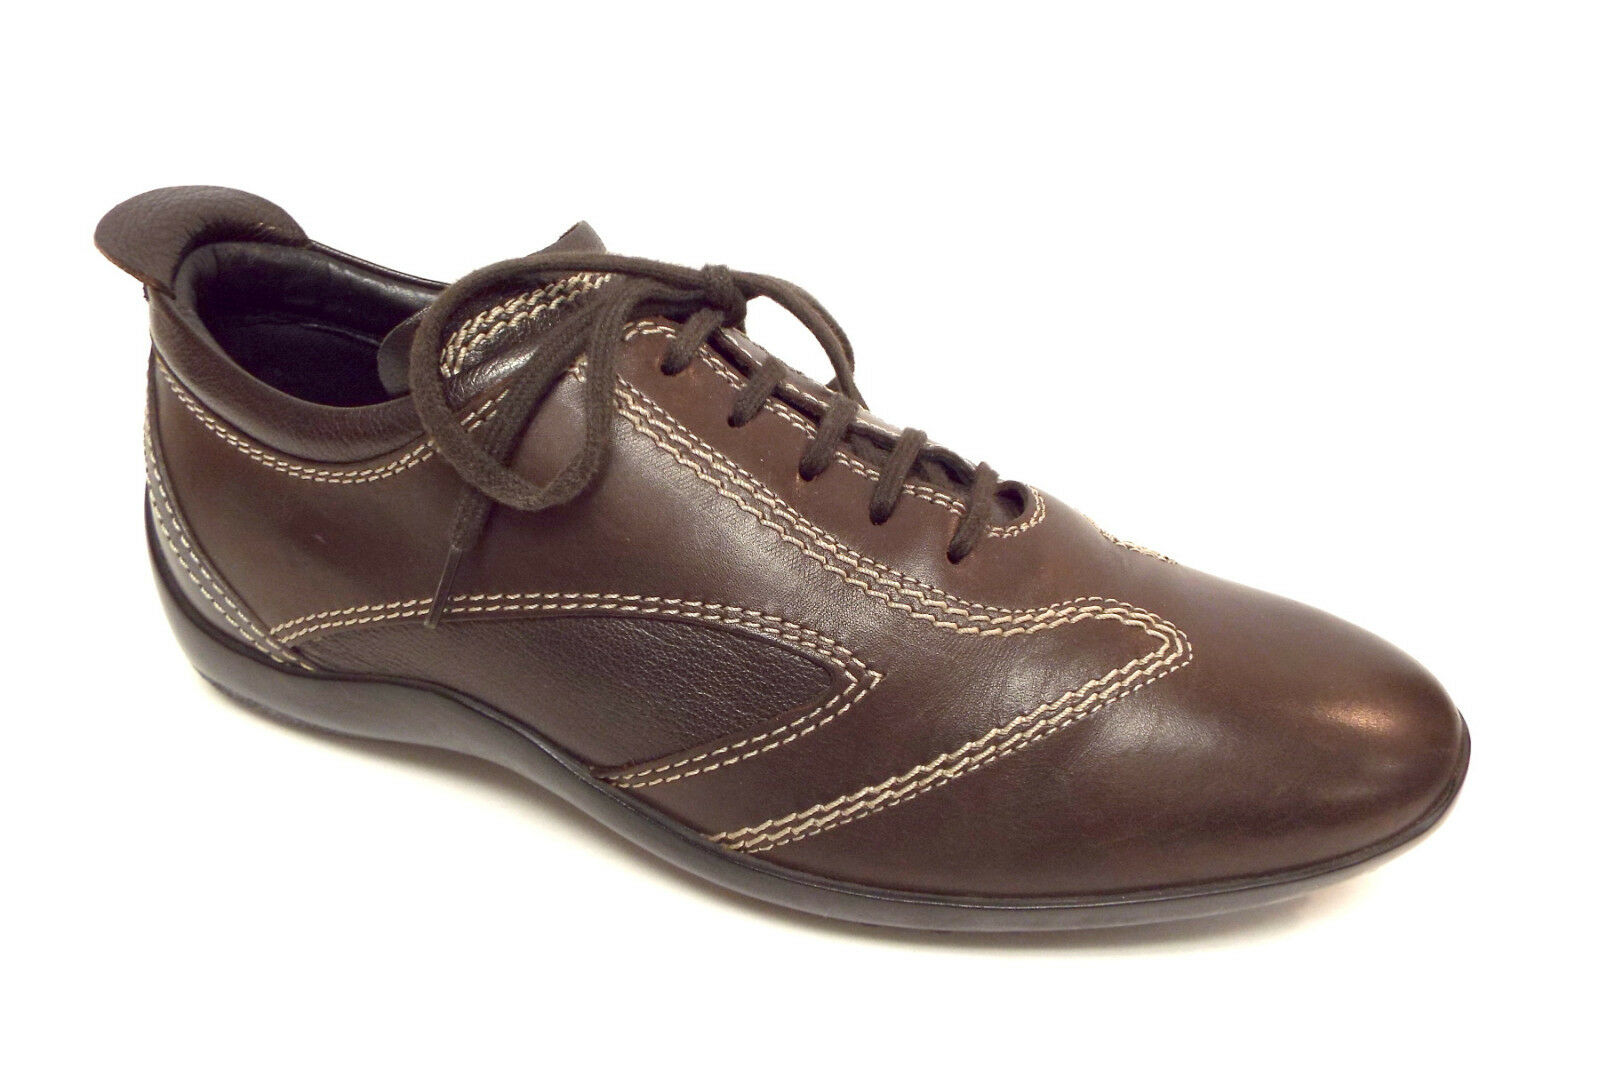 TODS Size 8 Brown Leather Lace Up Sneaker Drivers Oxfords shoes